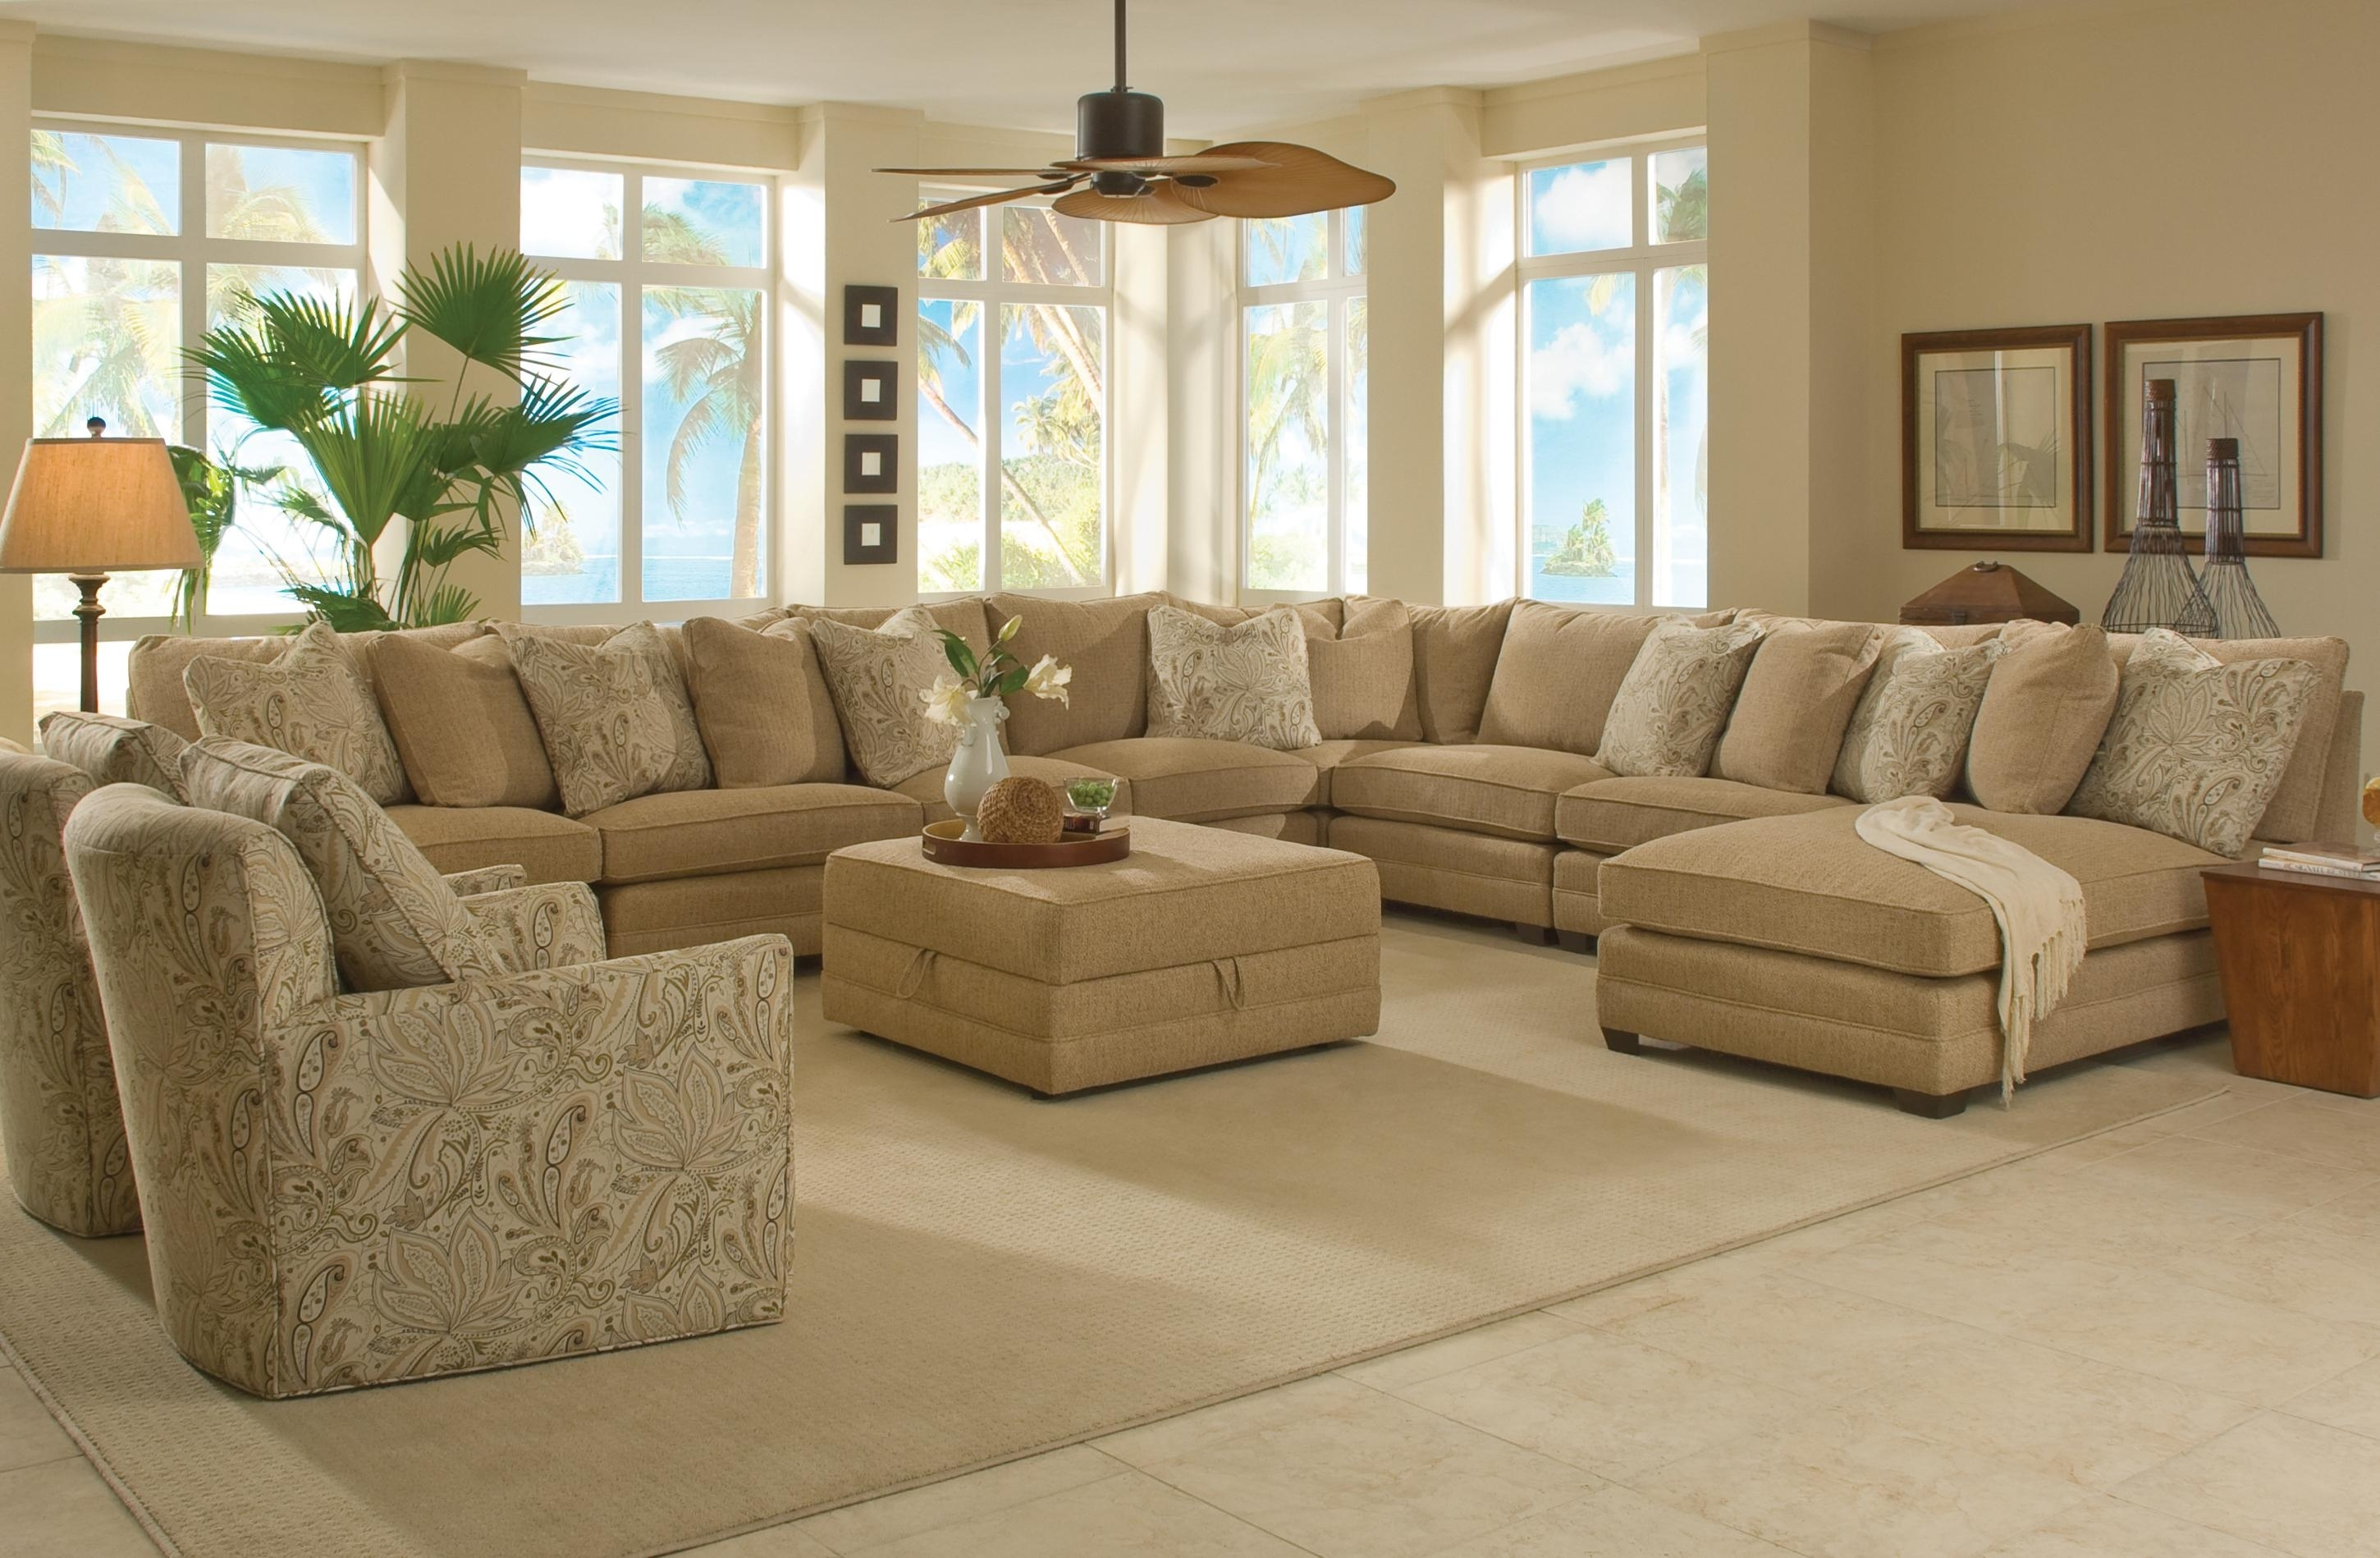 Sectional Sofas Austin – Home And Textiles For Sectional Sofas At Austin (View 9 of 15)